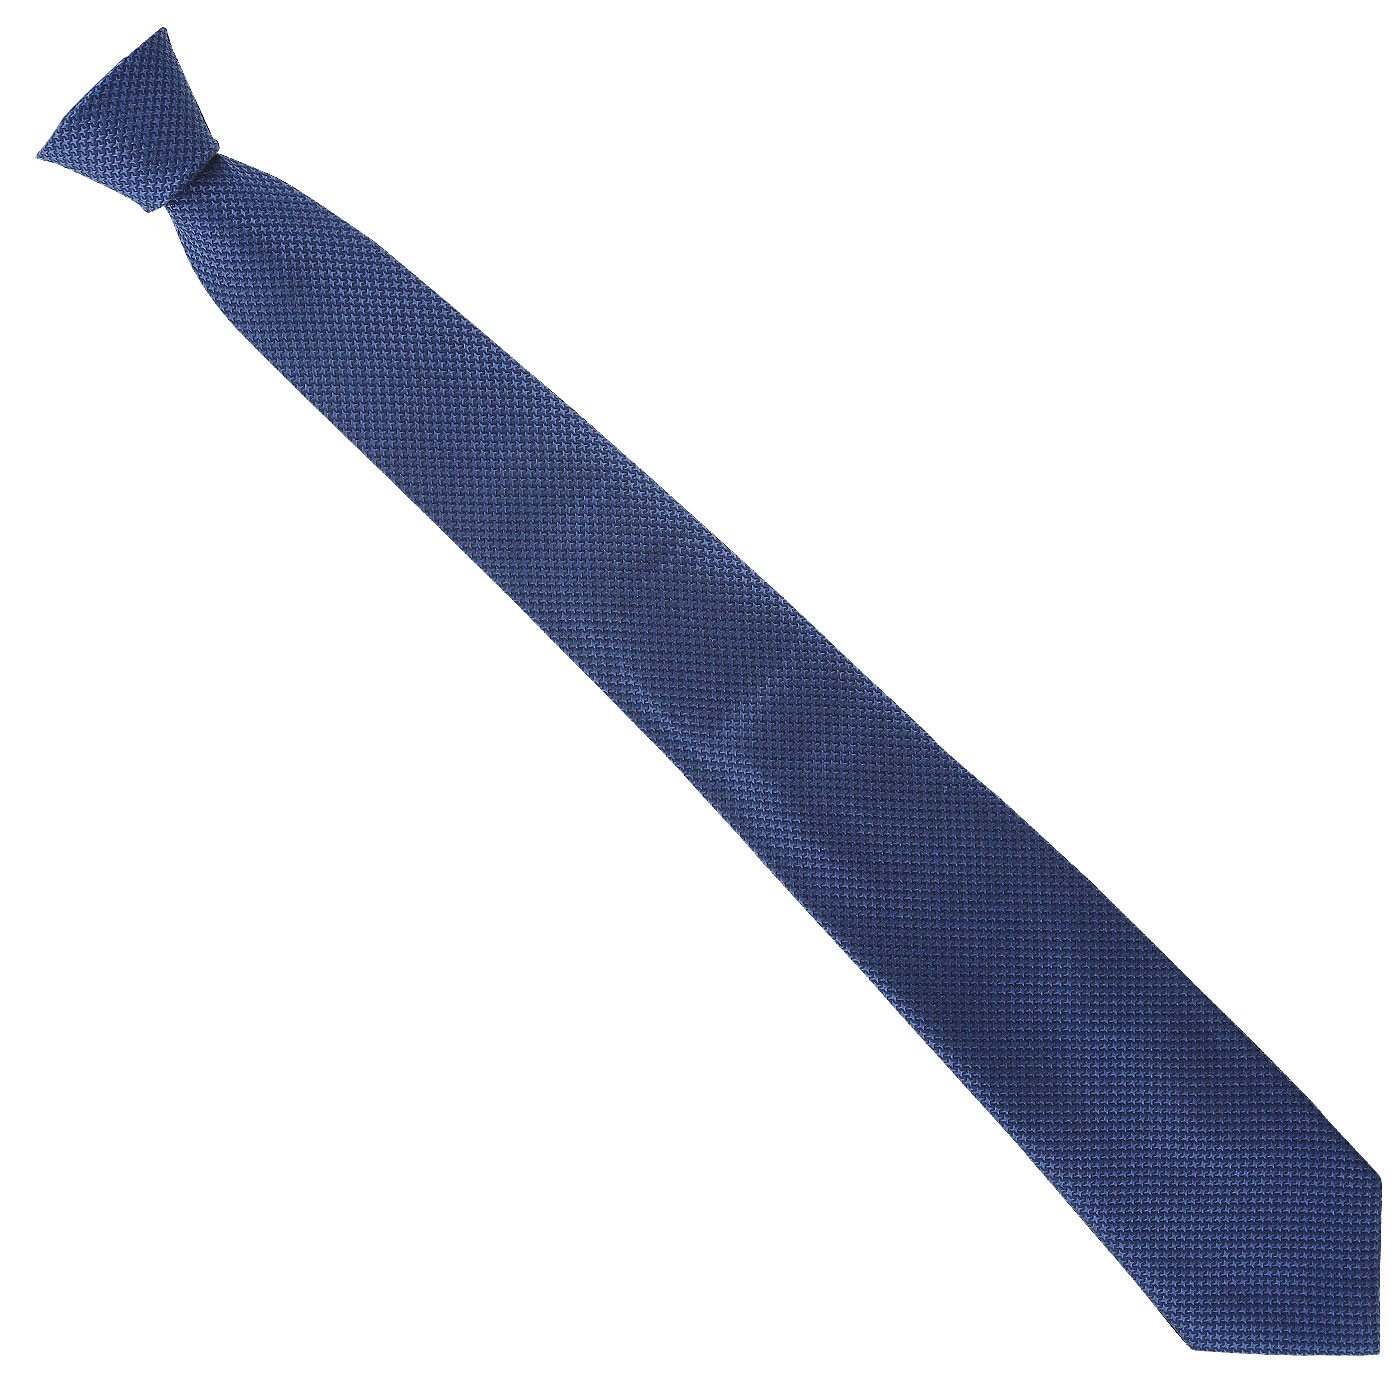 Tie and Bow Tie plain or fancy on Webmenshirts